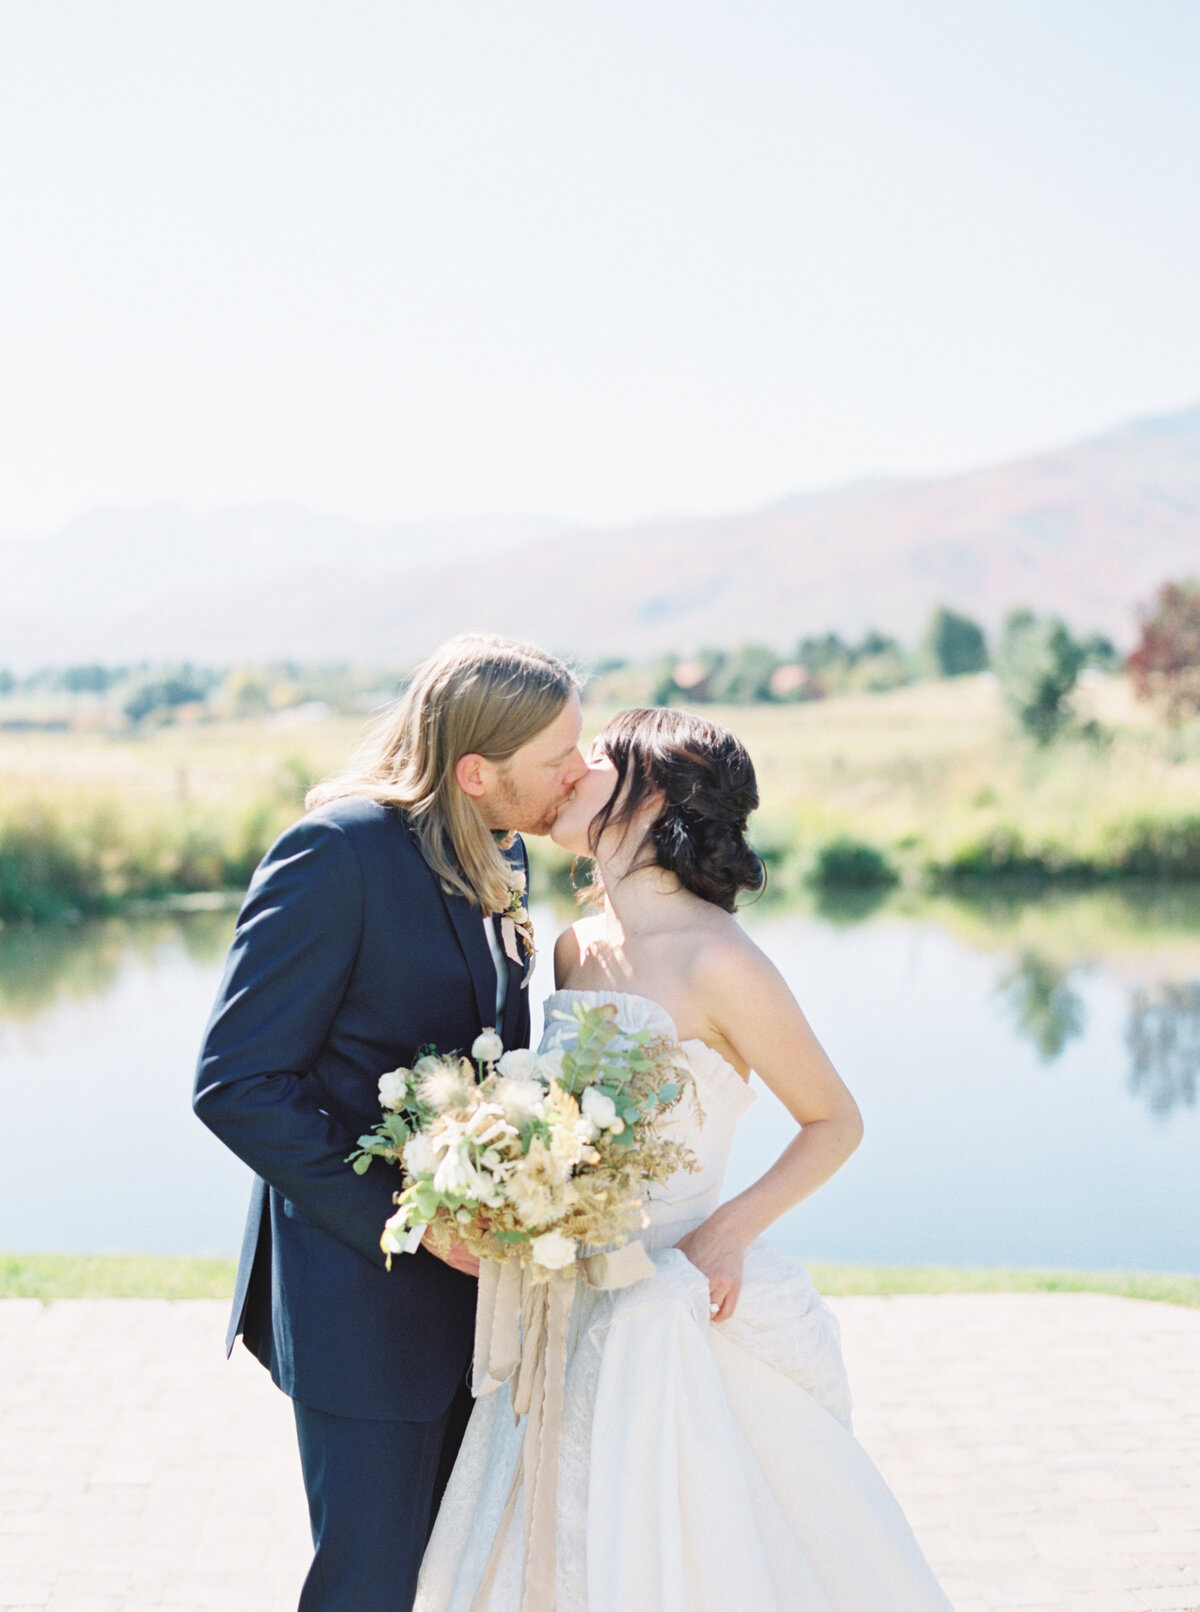 MarcelaPloskerPhotography|RiverBottomsRanch-159